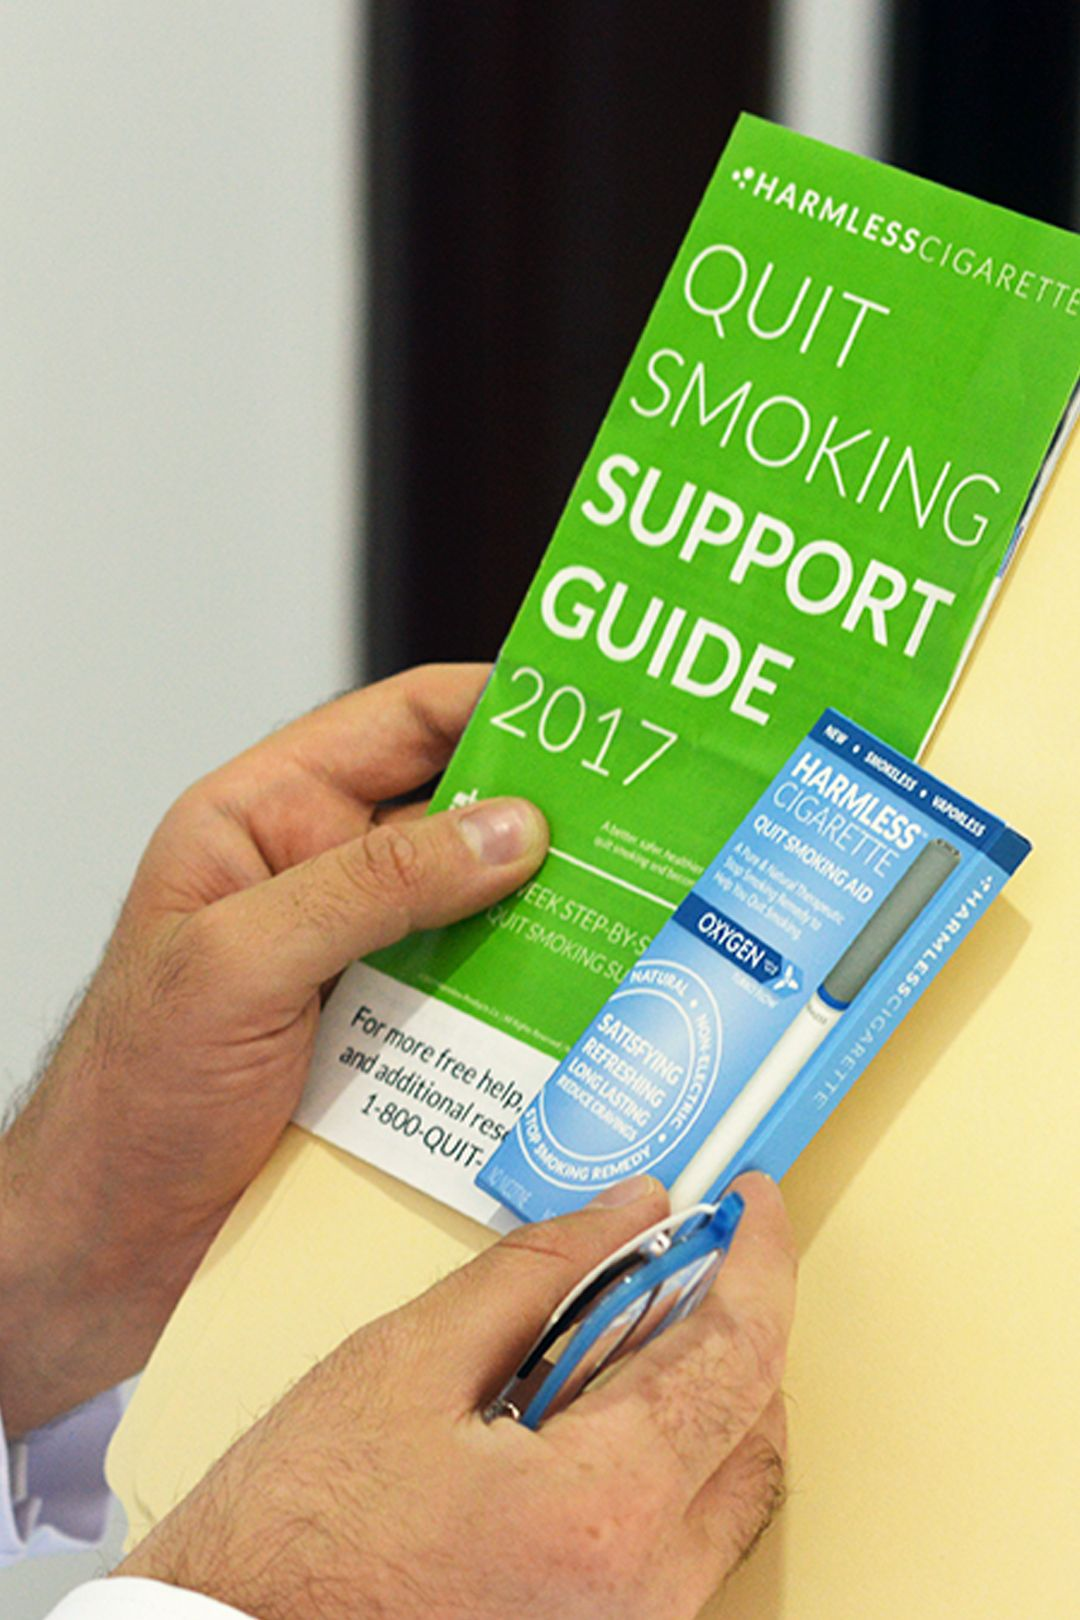 Pin on 1 Natural Quit Smoking Aid / Harmless Cigarette